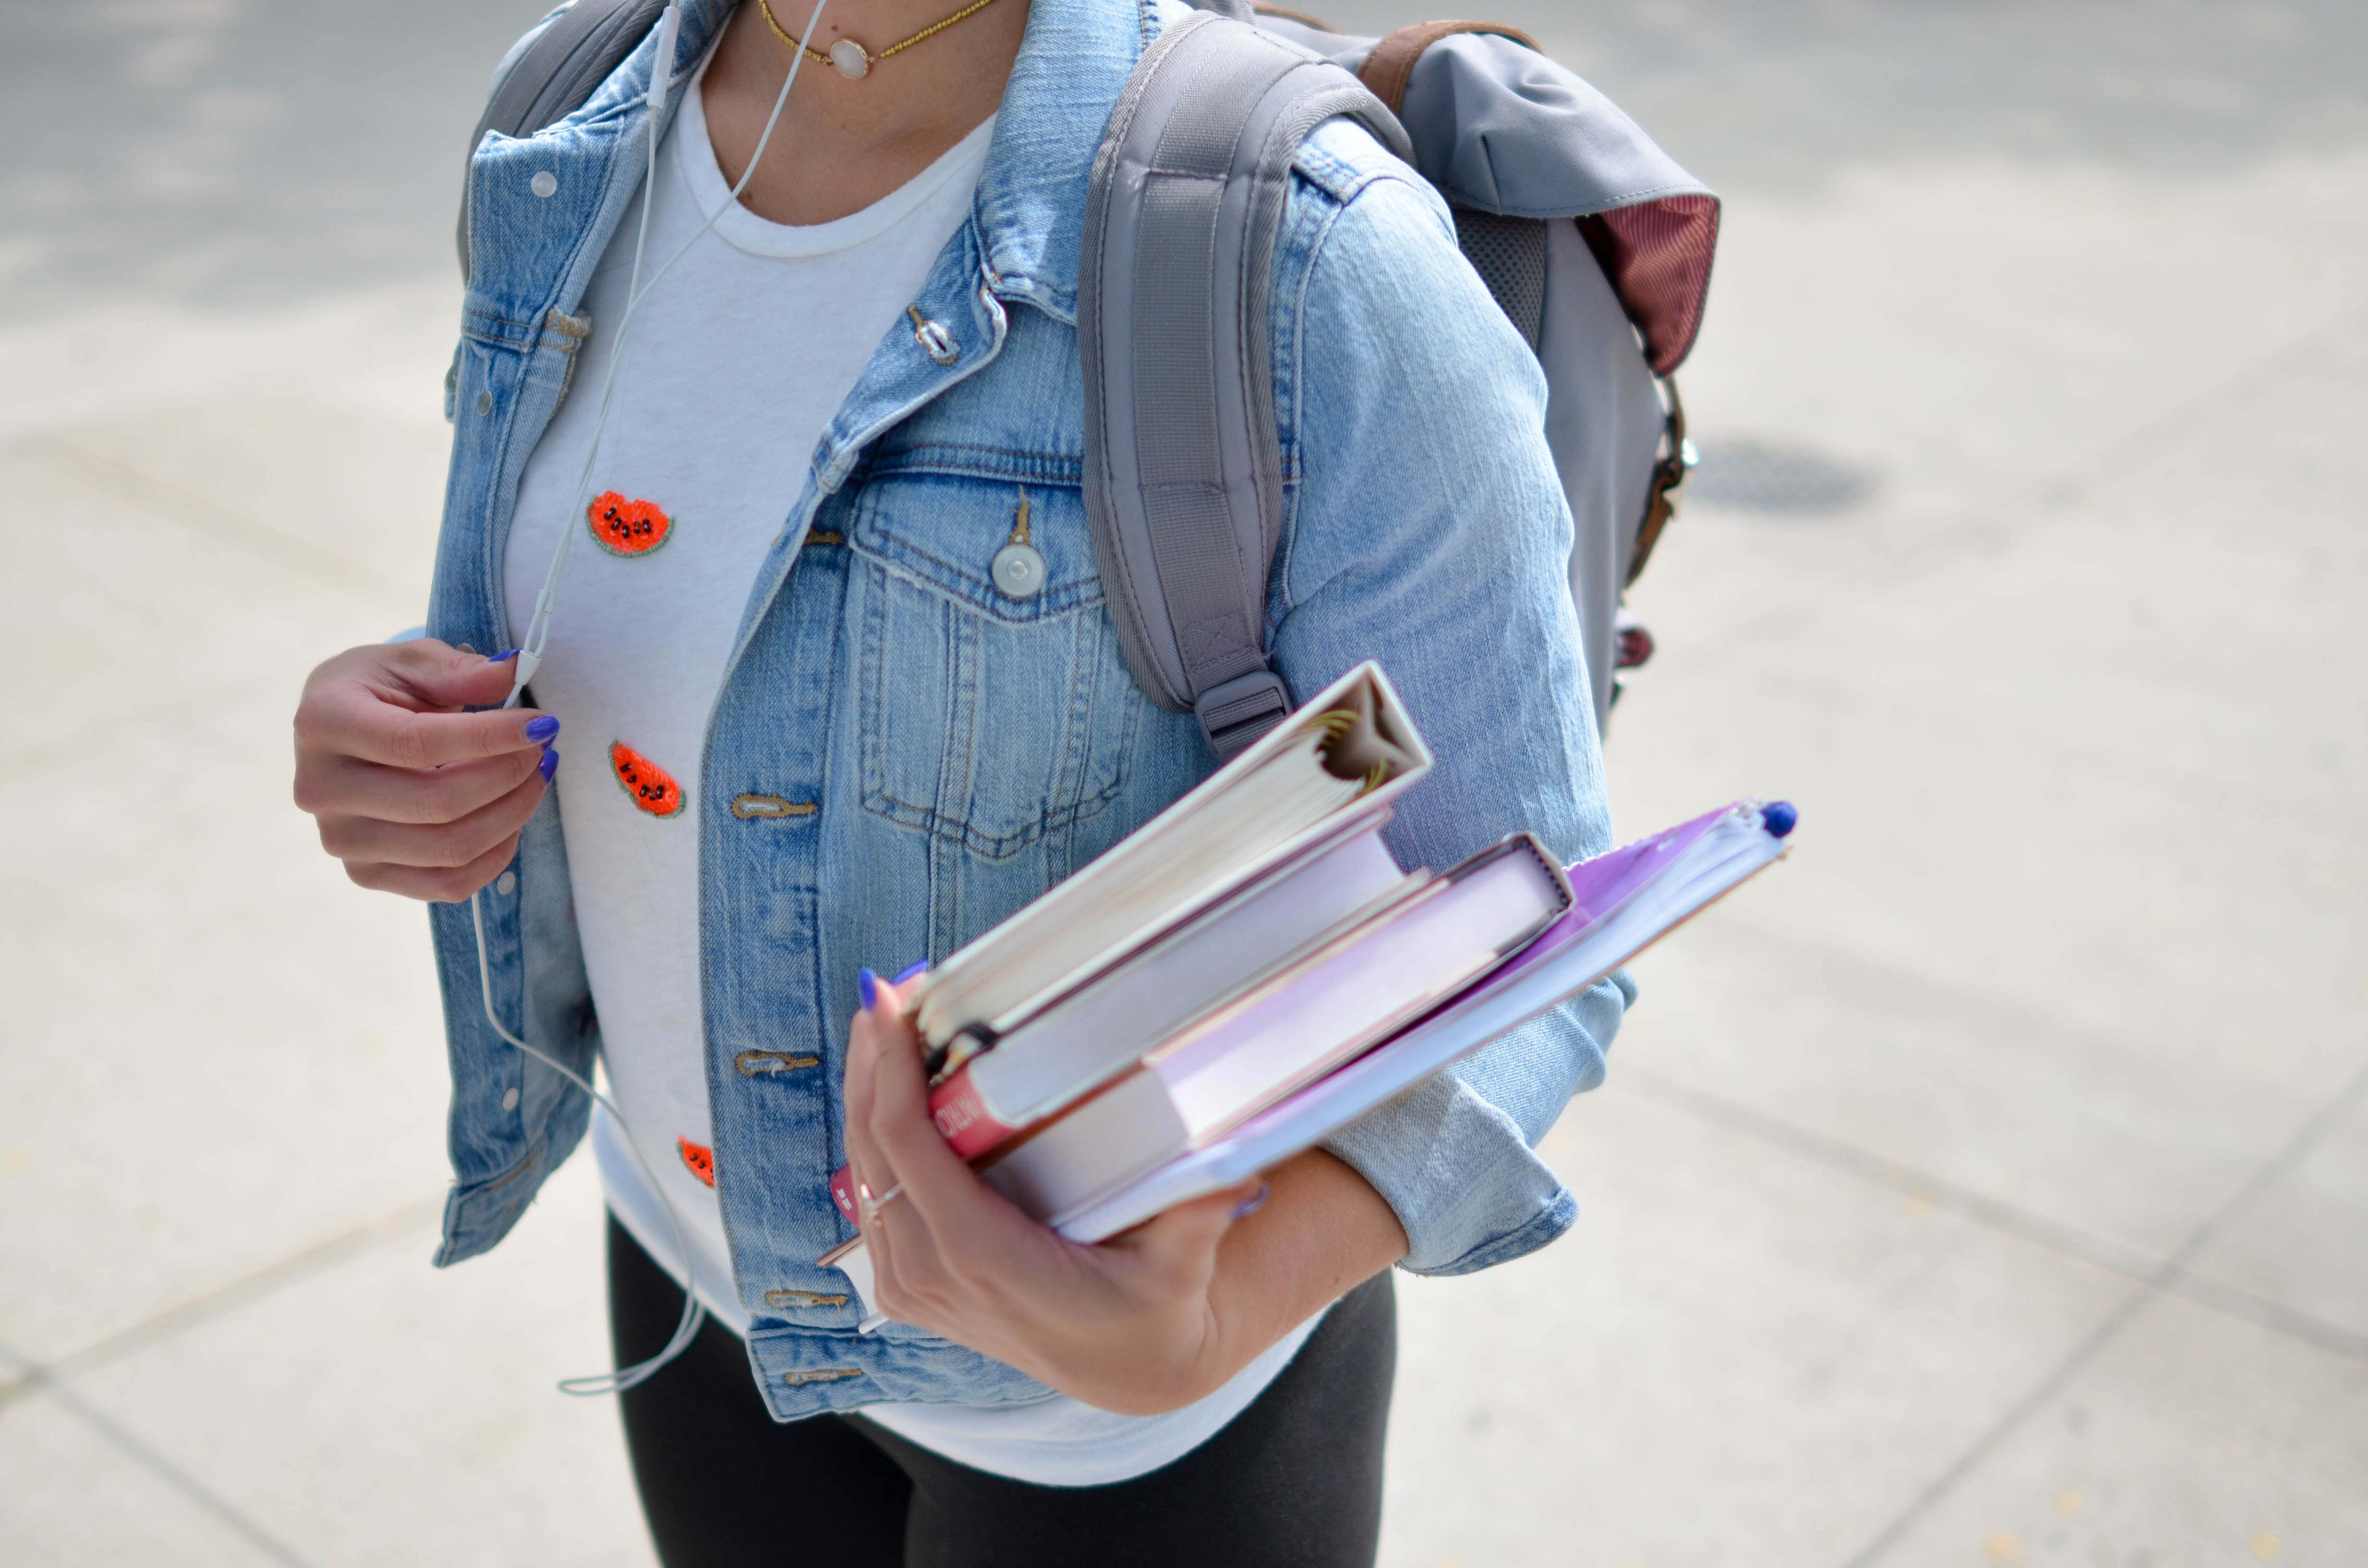 Torso of girl student holding books and a backpack